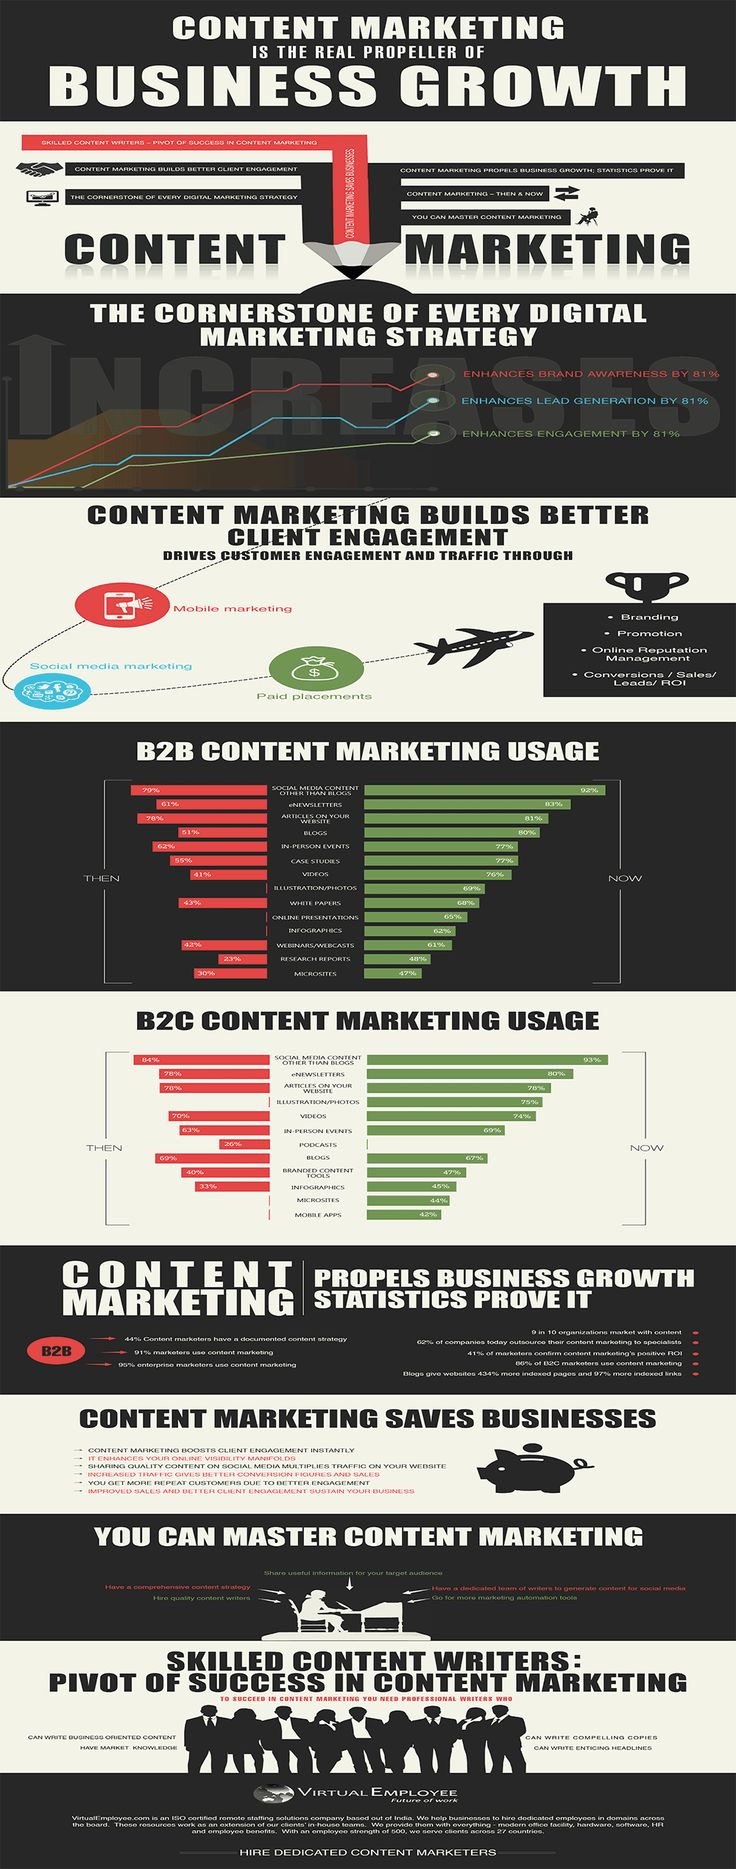 Having a content marketing strategy contributes to major growth in B2B and B2C industries. It not only helps in gaining online popularity, but also acts as a potent engagement tool.